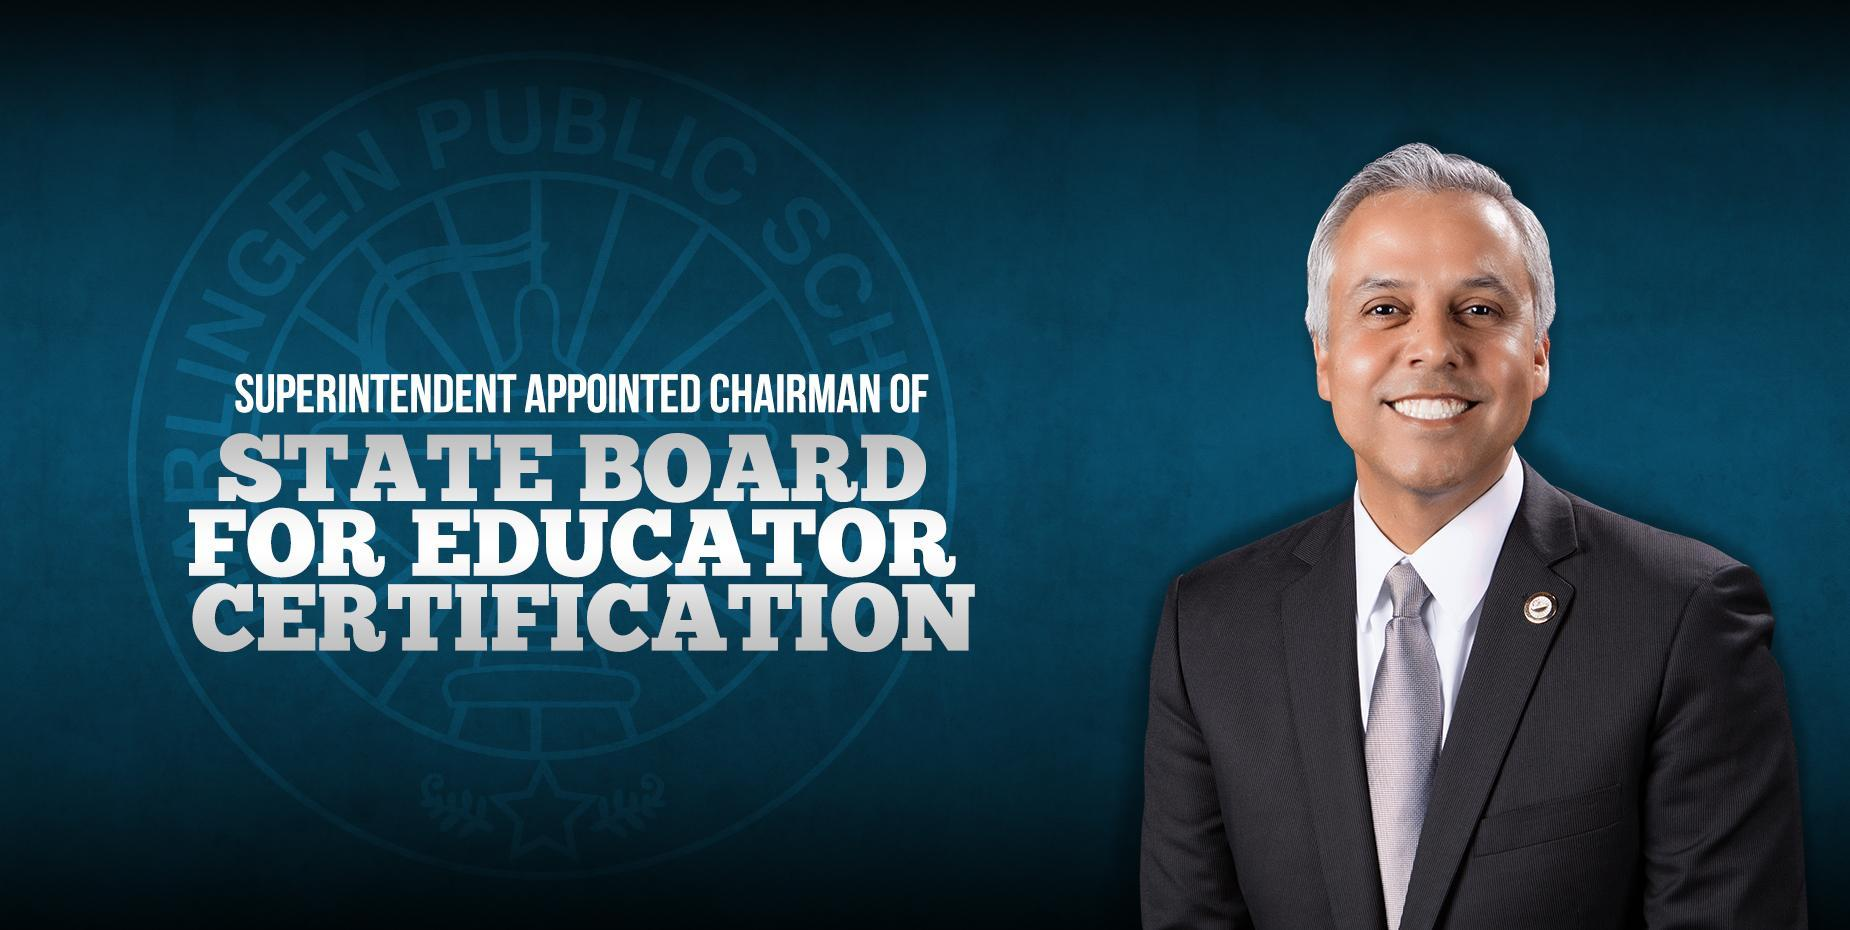 Superintendent appointed chairman of State Board for Educator Certification